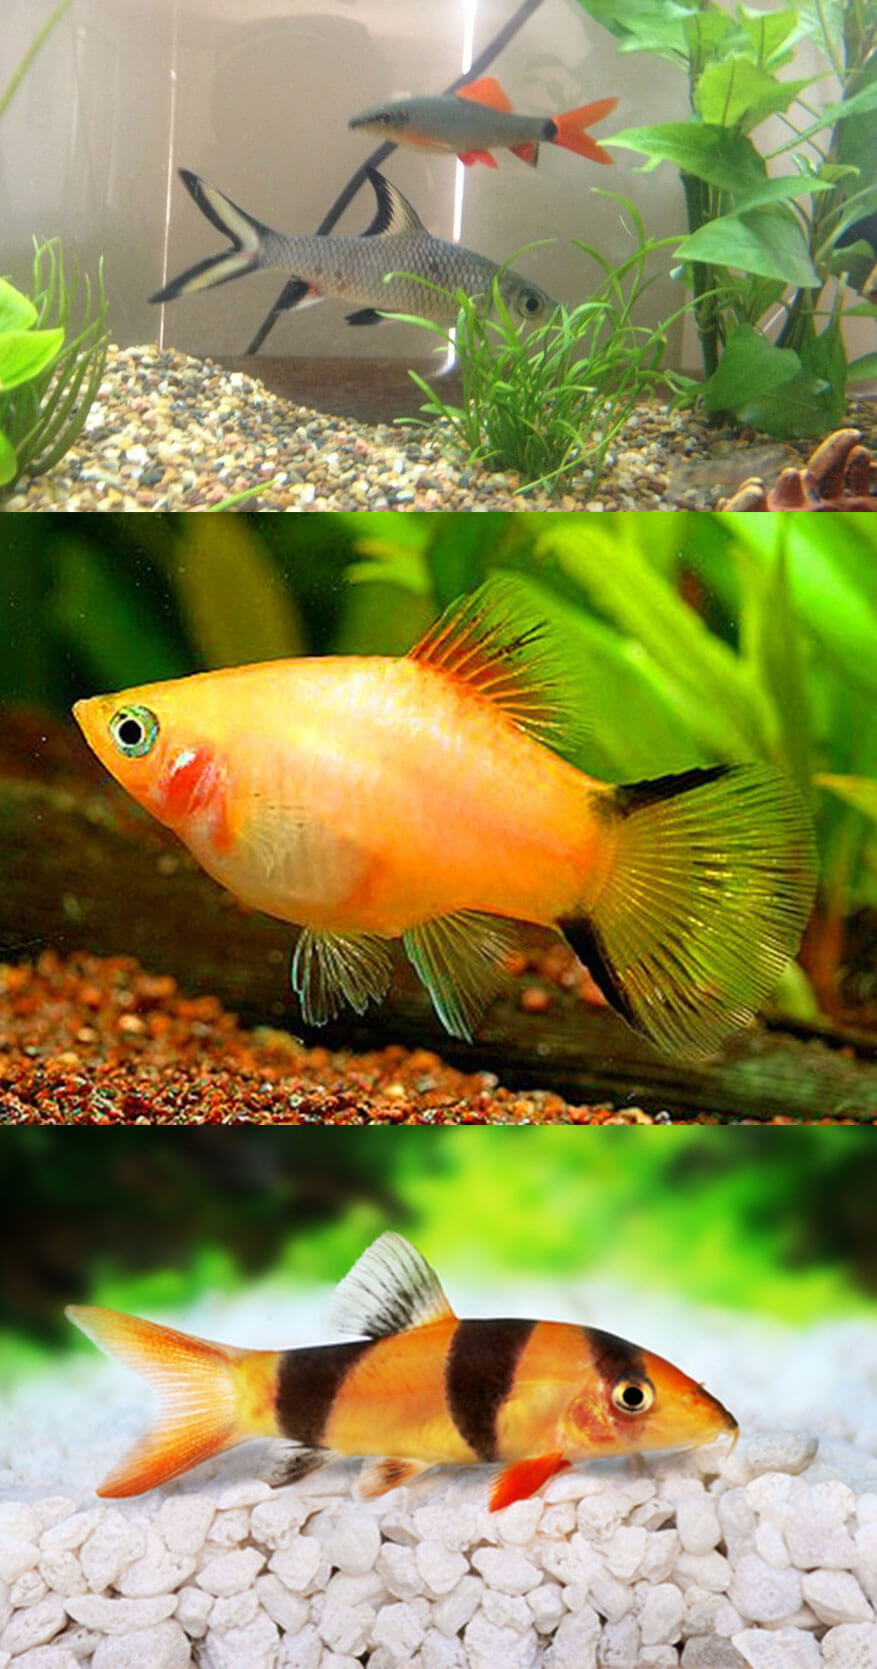 Which is the best fish to have as a Pet?